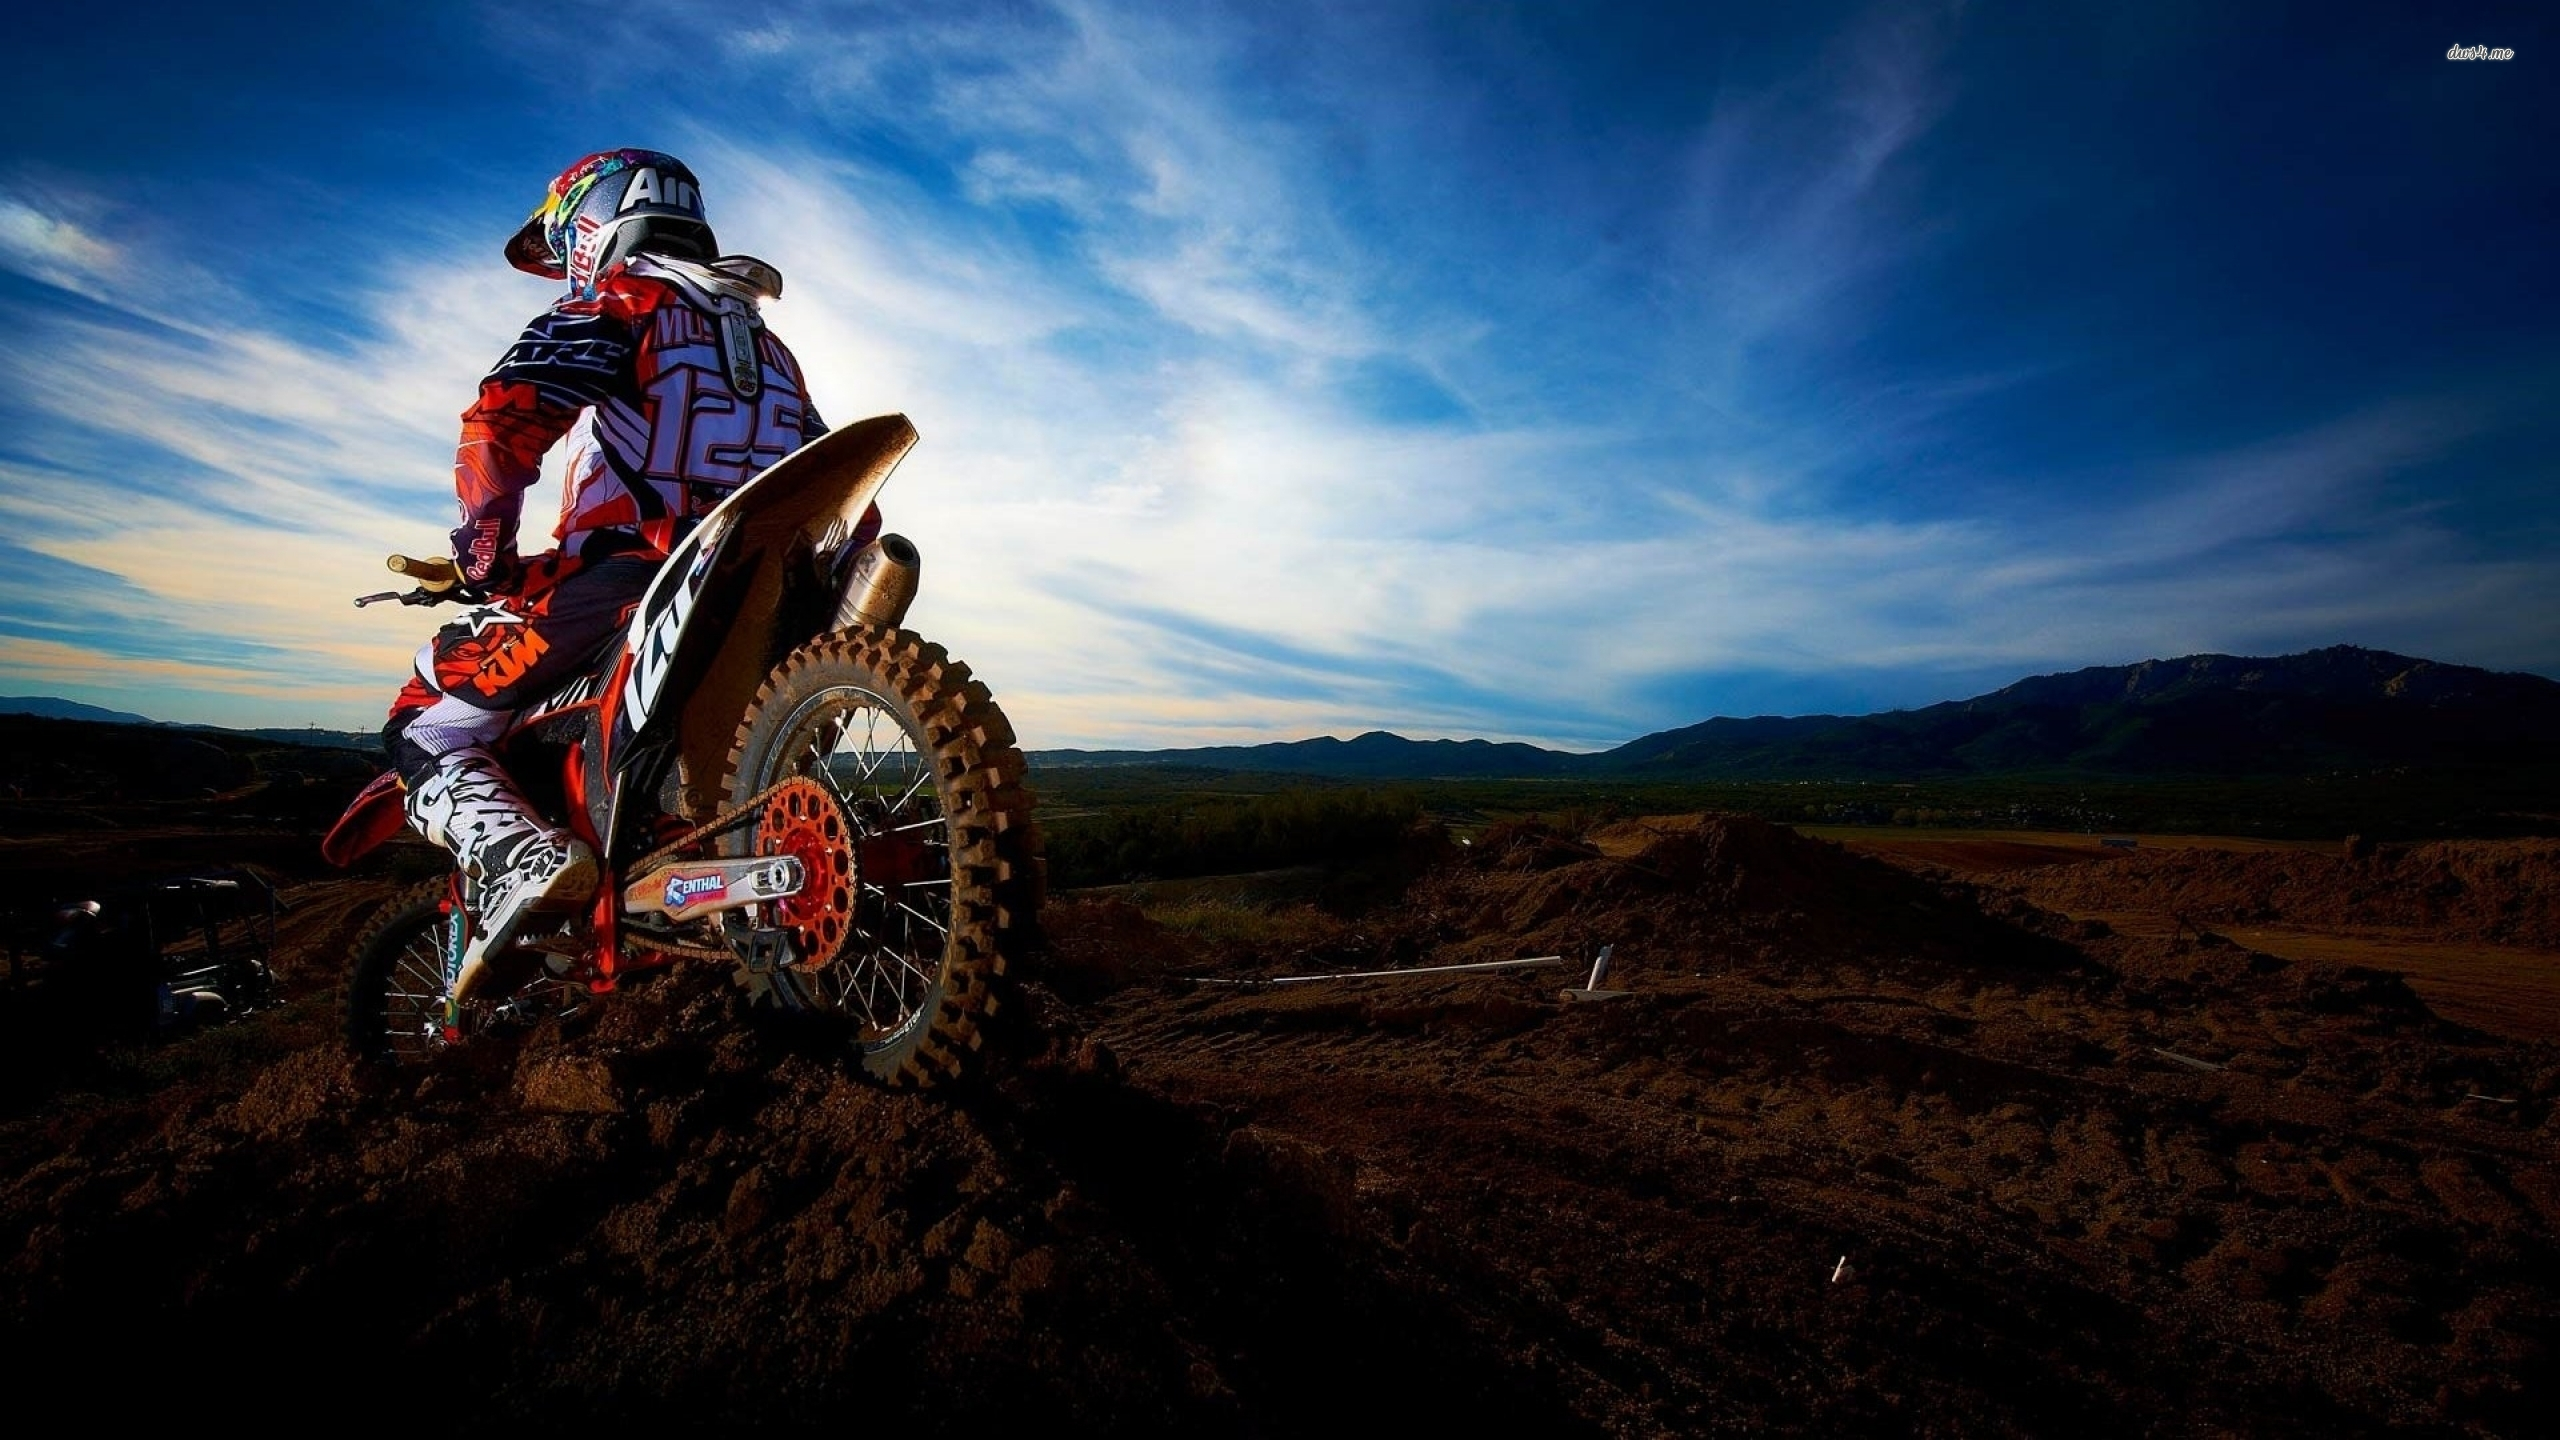 Motocross and sky wallpaper | Wide Screen Wallpaper 1080p,2K,4K